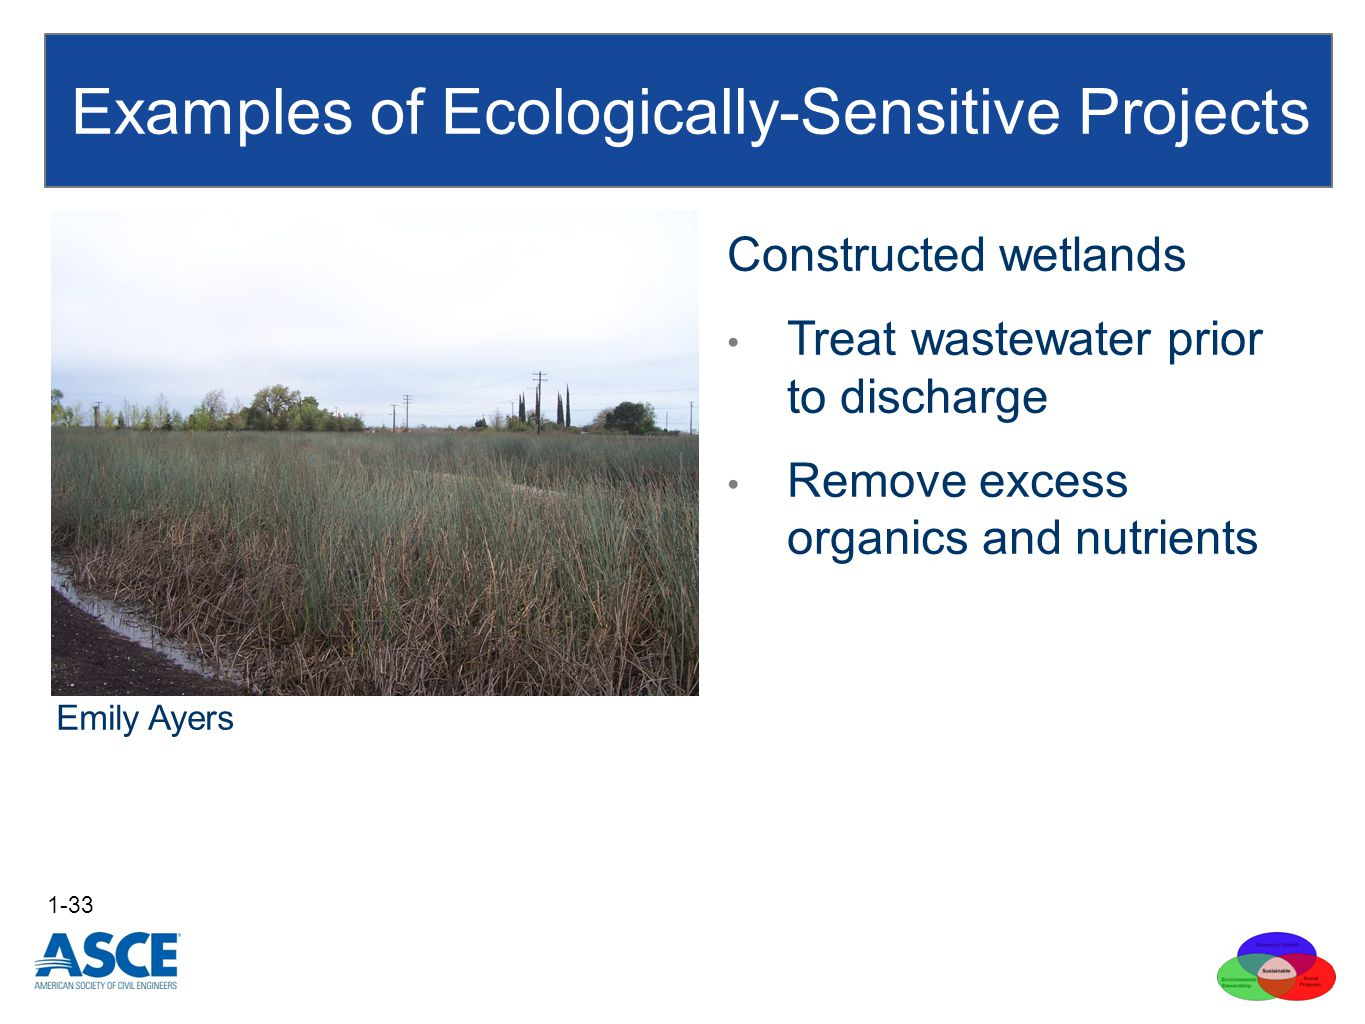 Examples of Ecologically-Sensitive Projects 1-33 Emily Ayers Constructed wetlands Treat wastewater prior to discharge Remove excess organics and nutrients